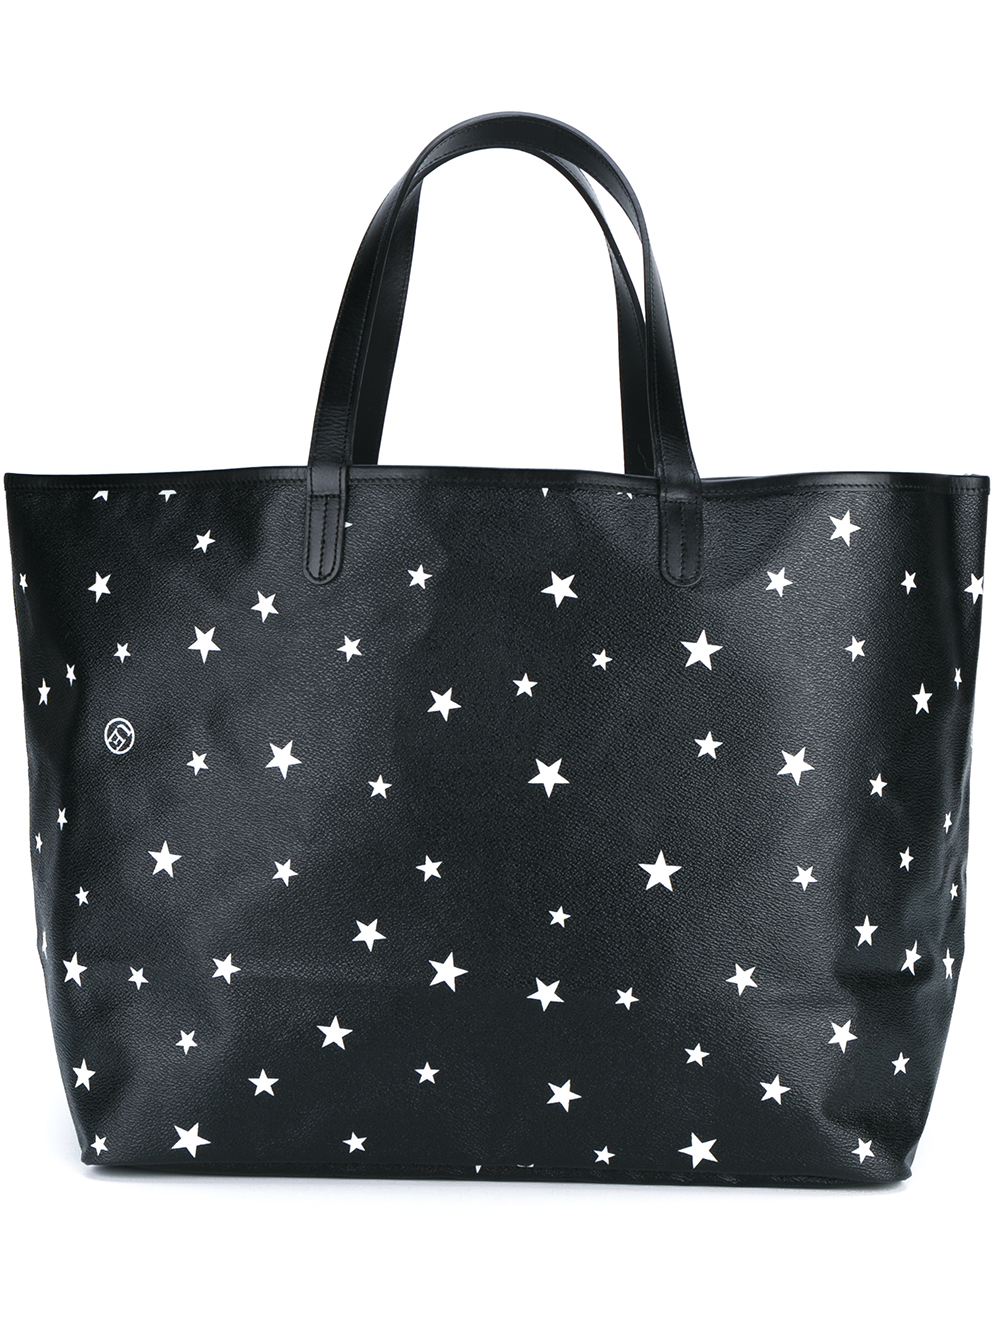 Uniform Experiment Star Print Leather Tote Bag In White